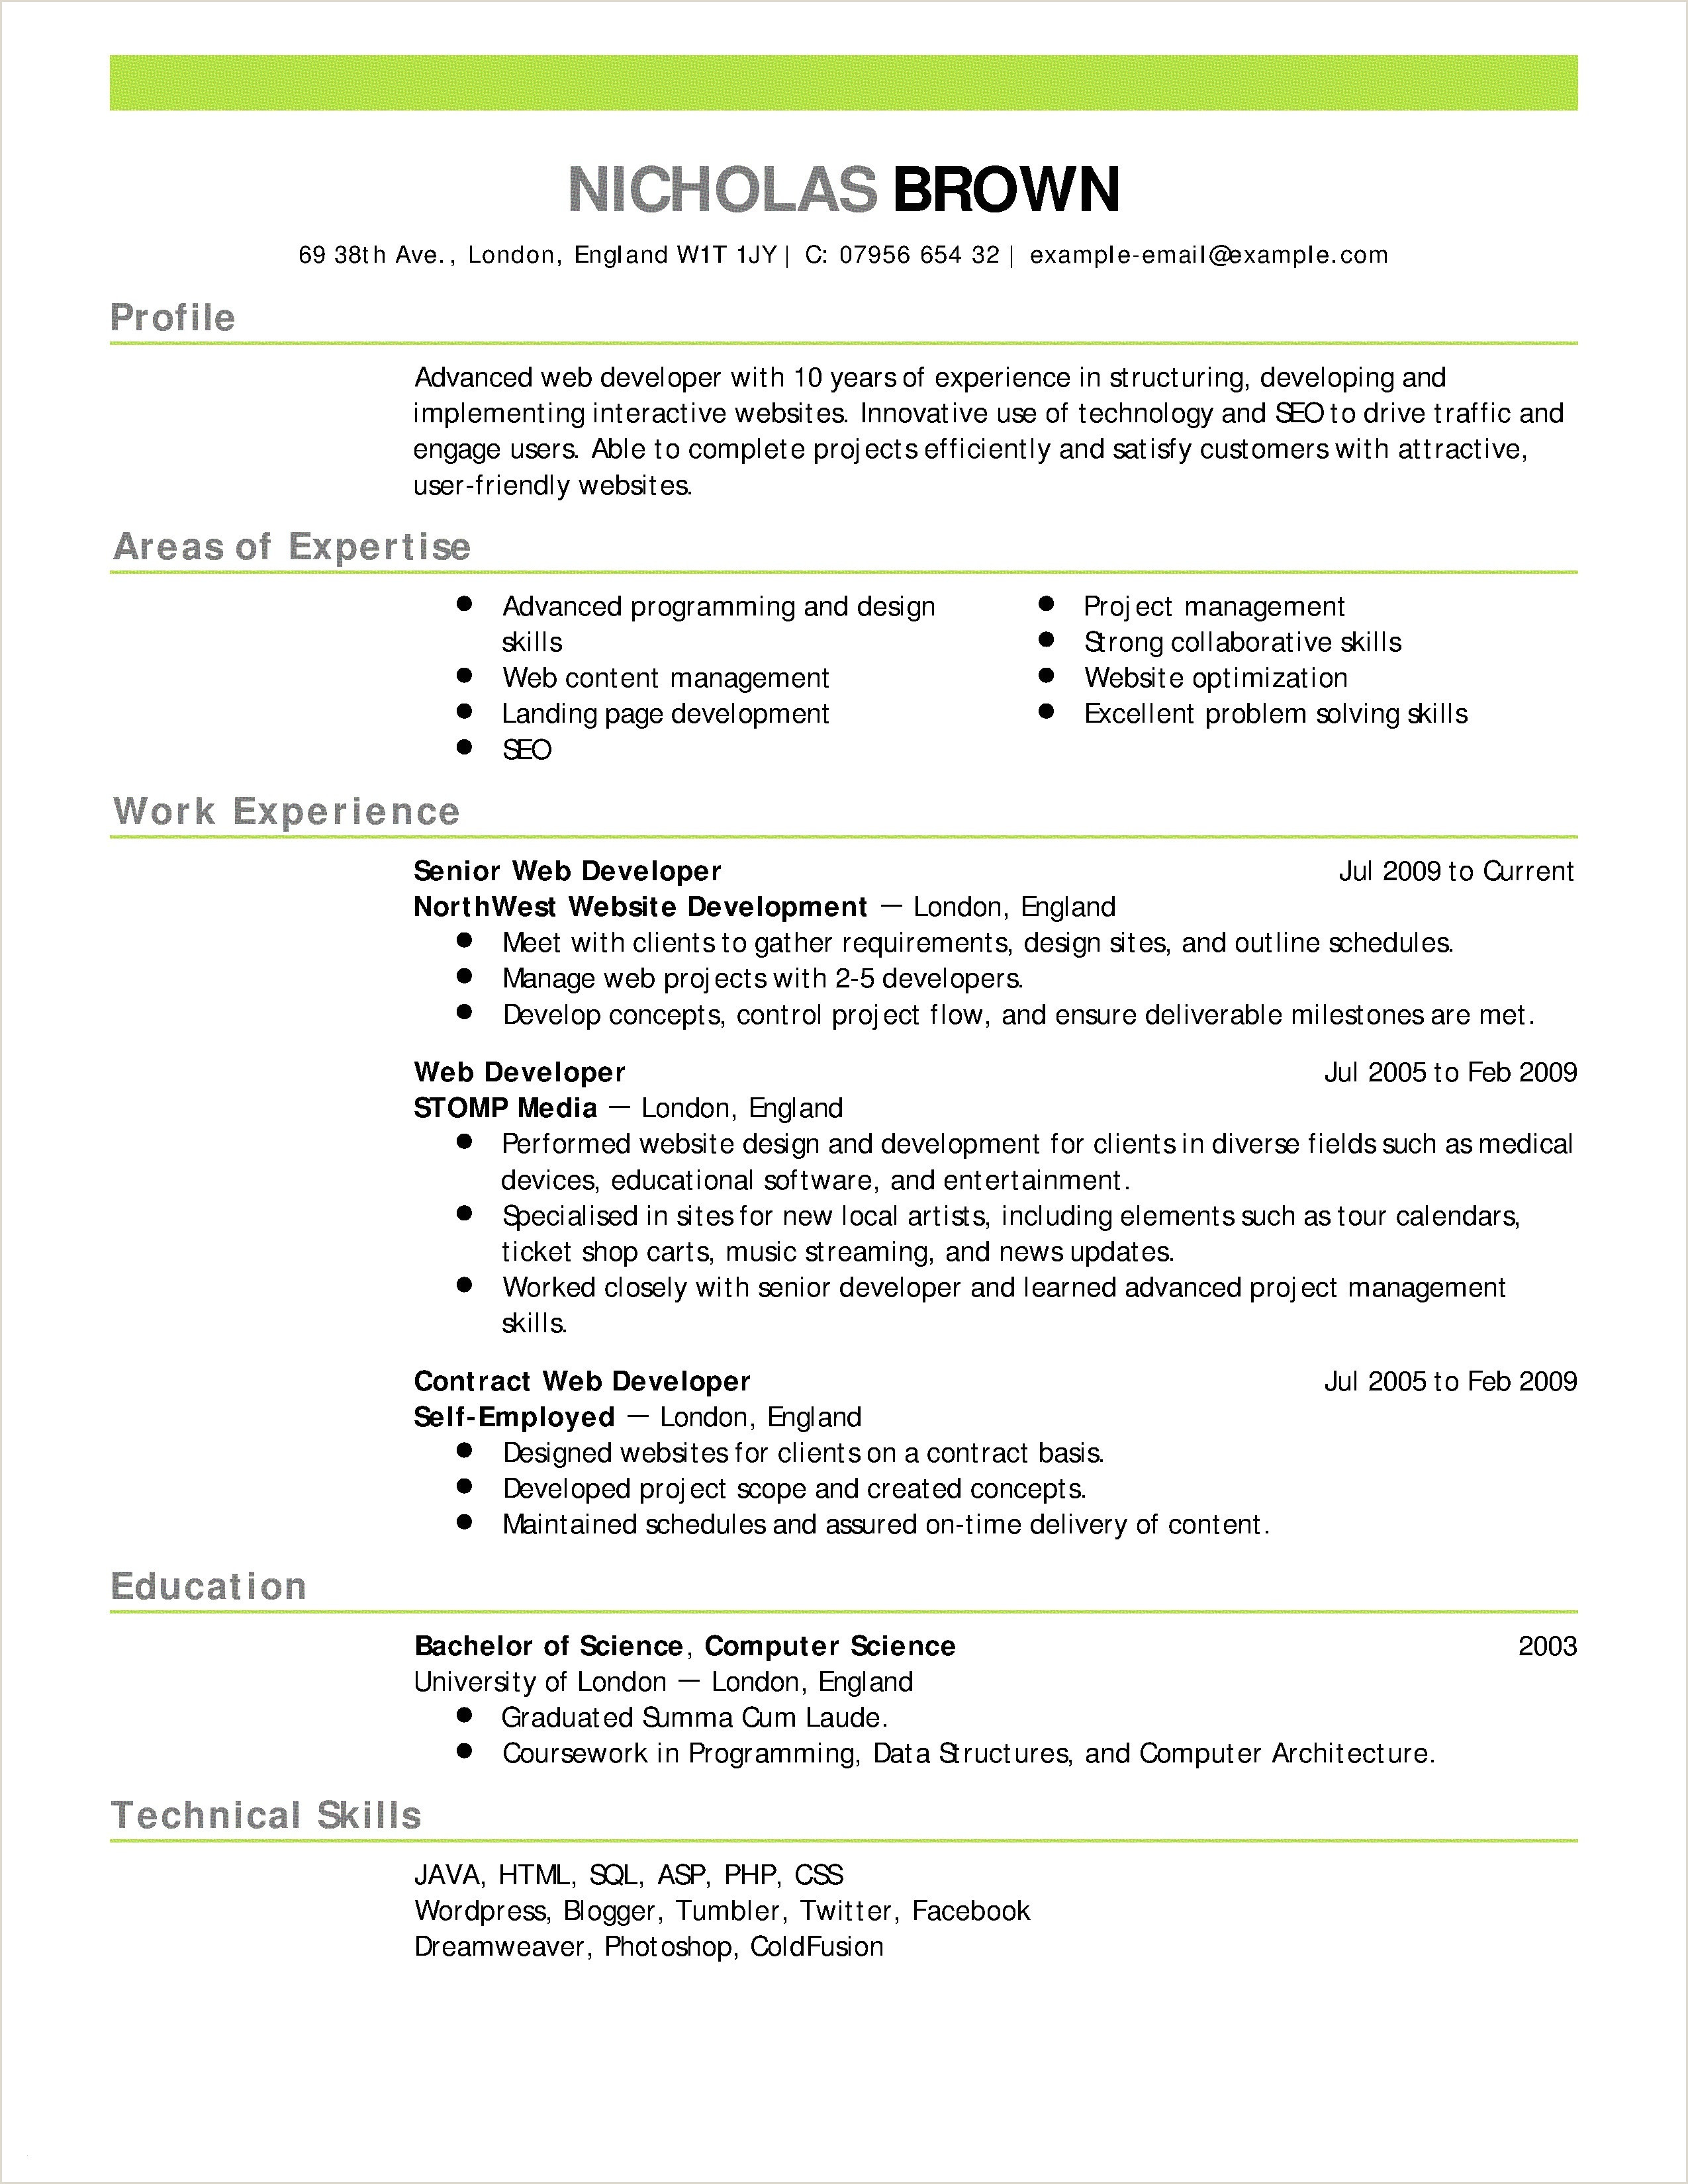 Accounting Professional Summary Examples New Accounting Resume Summary